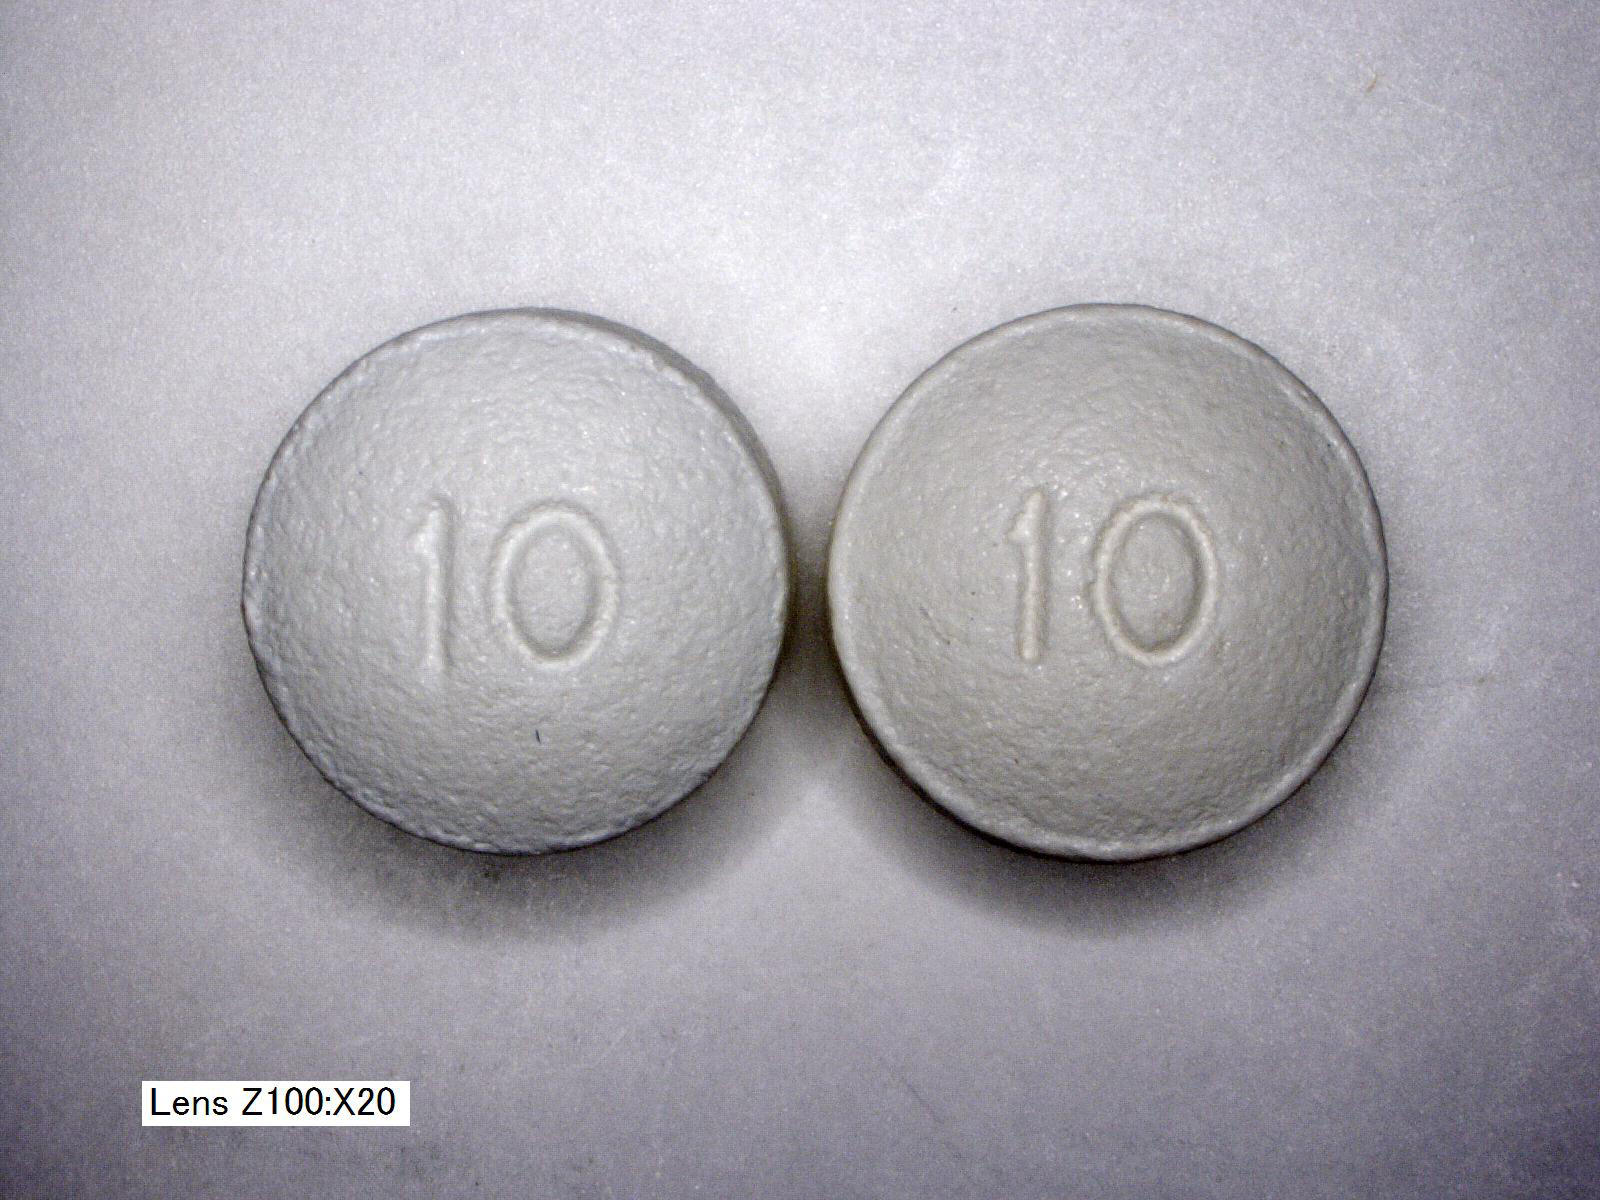 how much oxycodone is in hydrocodone